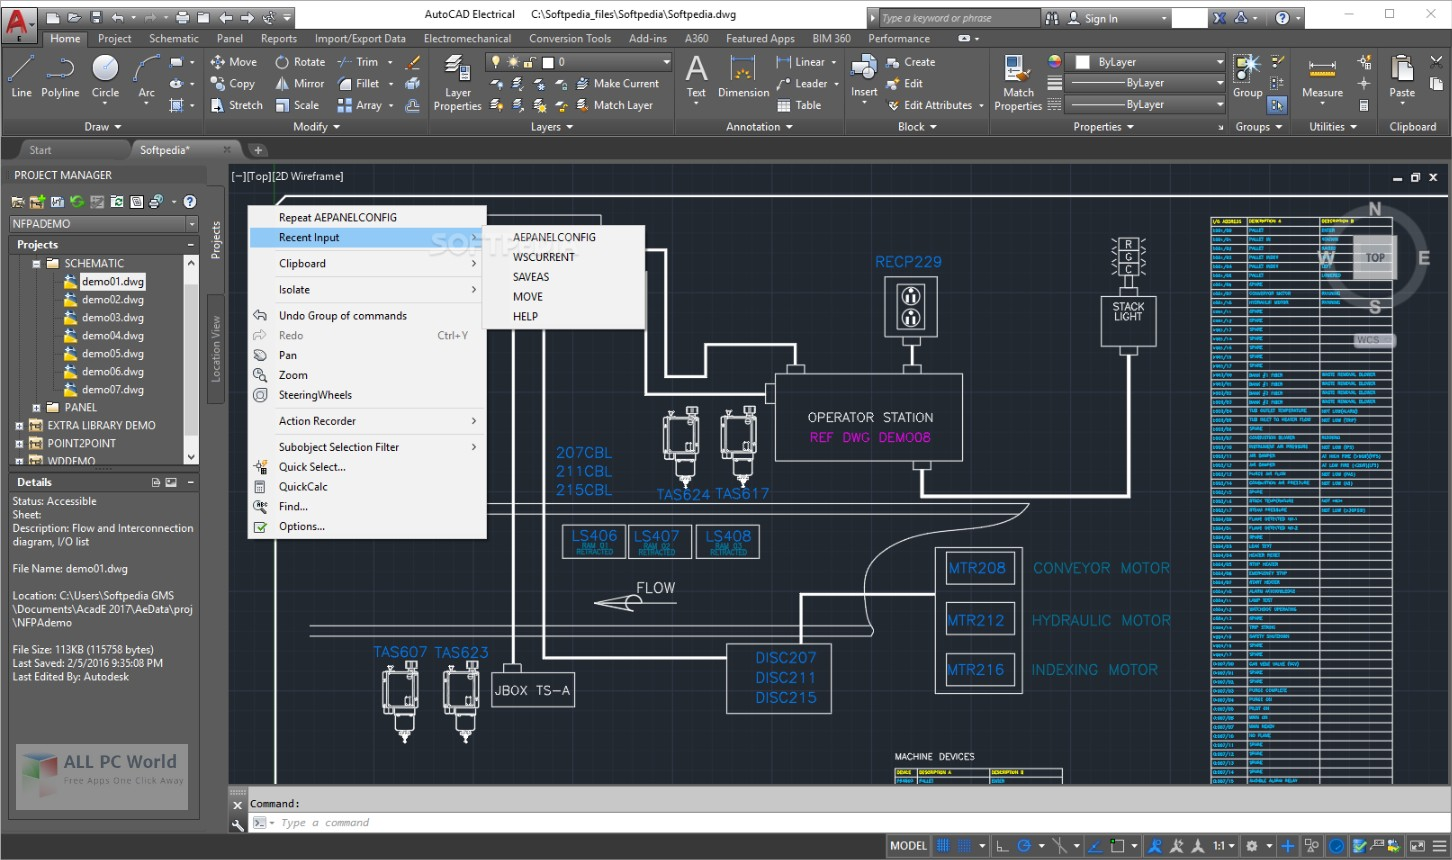 Autocad Electrical 2019 Free Download All Pc World